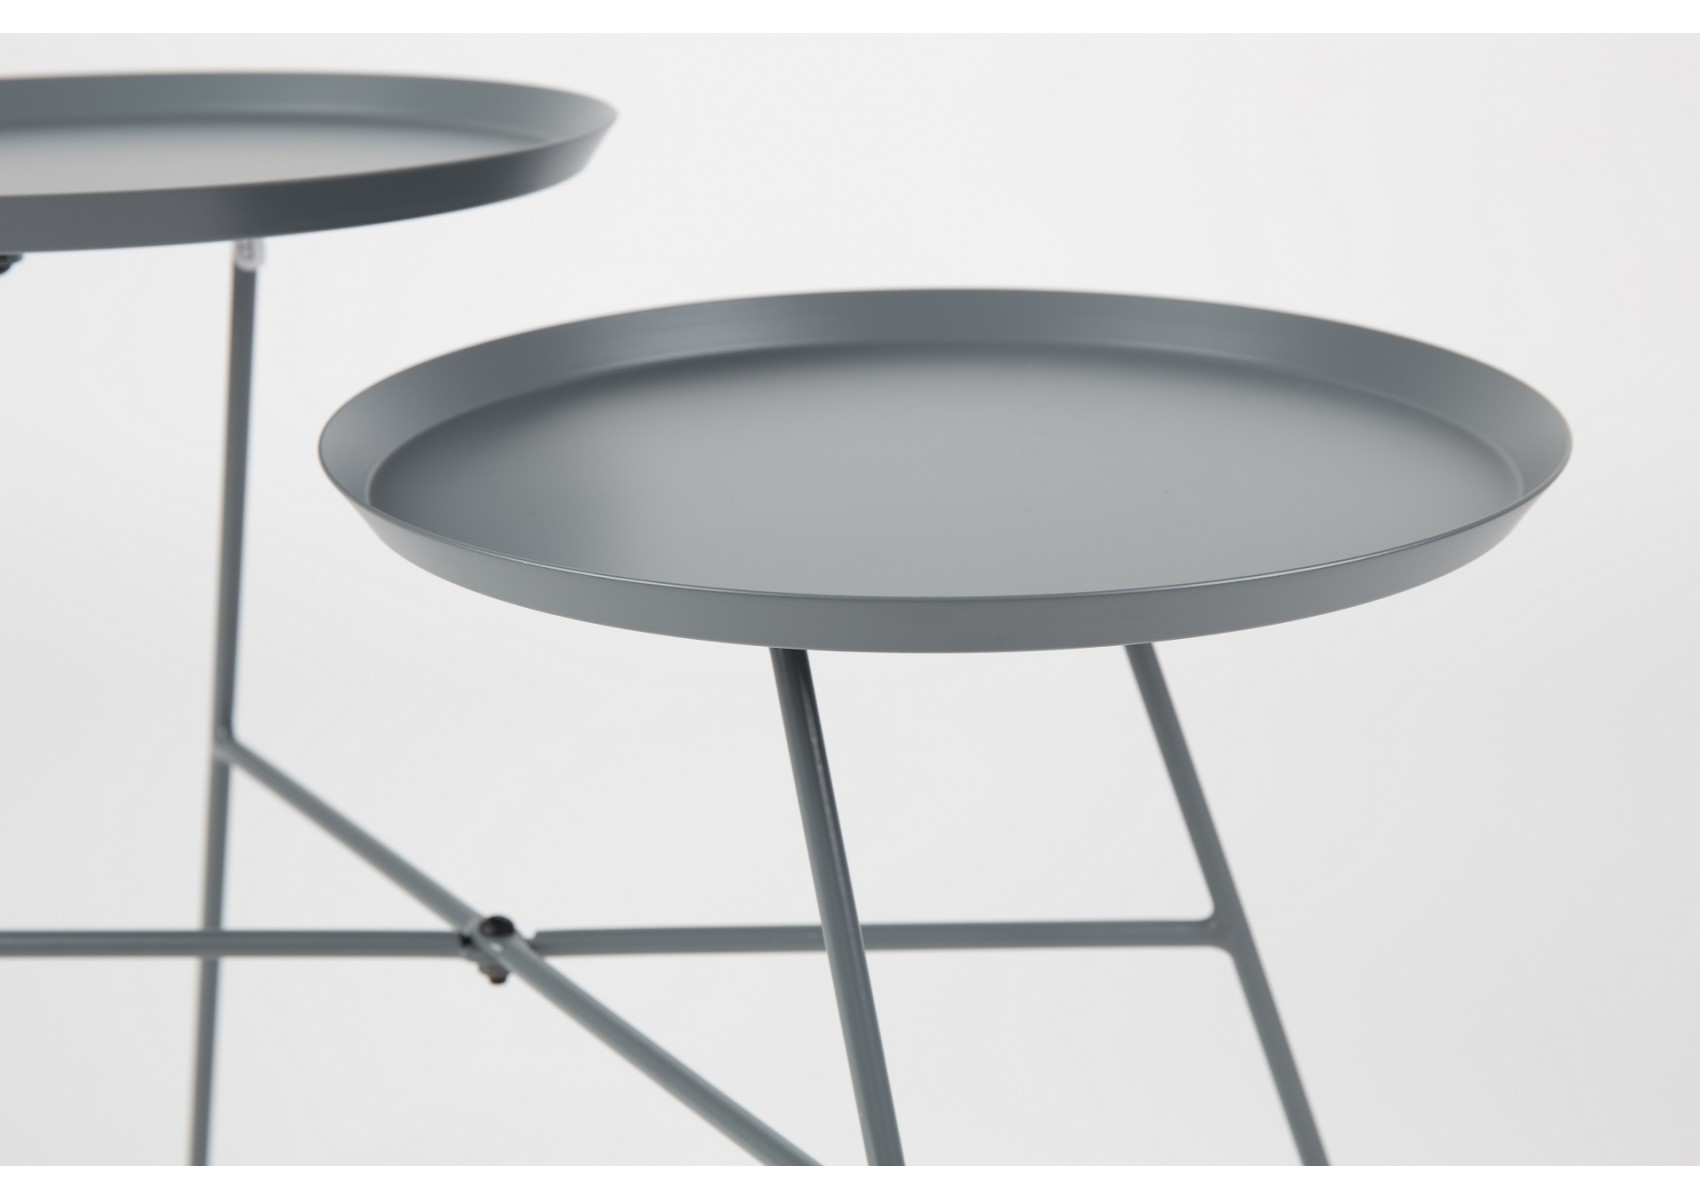 Table d 39 appoint design de la collection indy de chez boite - Table d appoint design ...